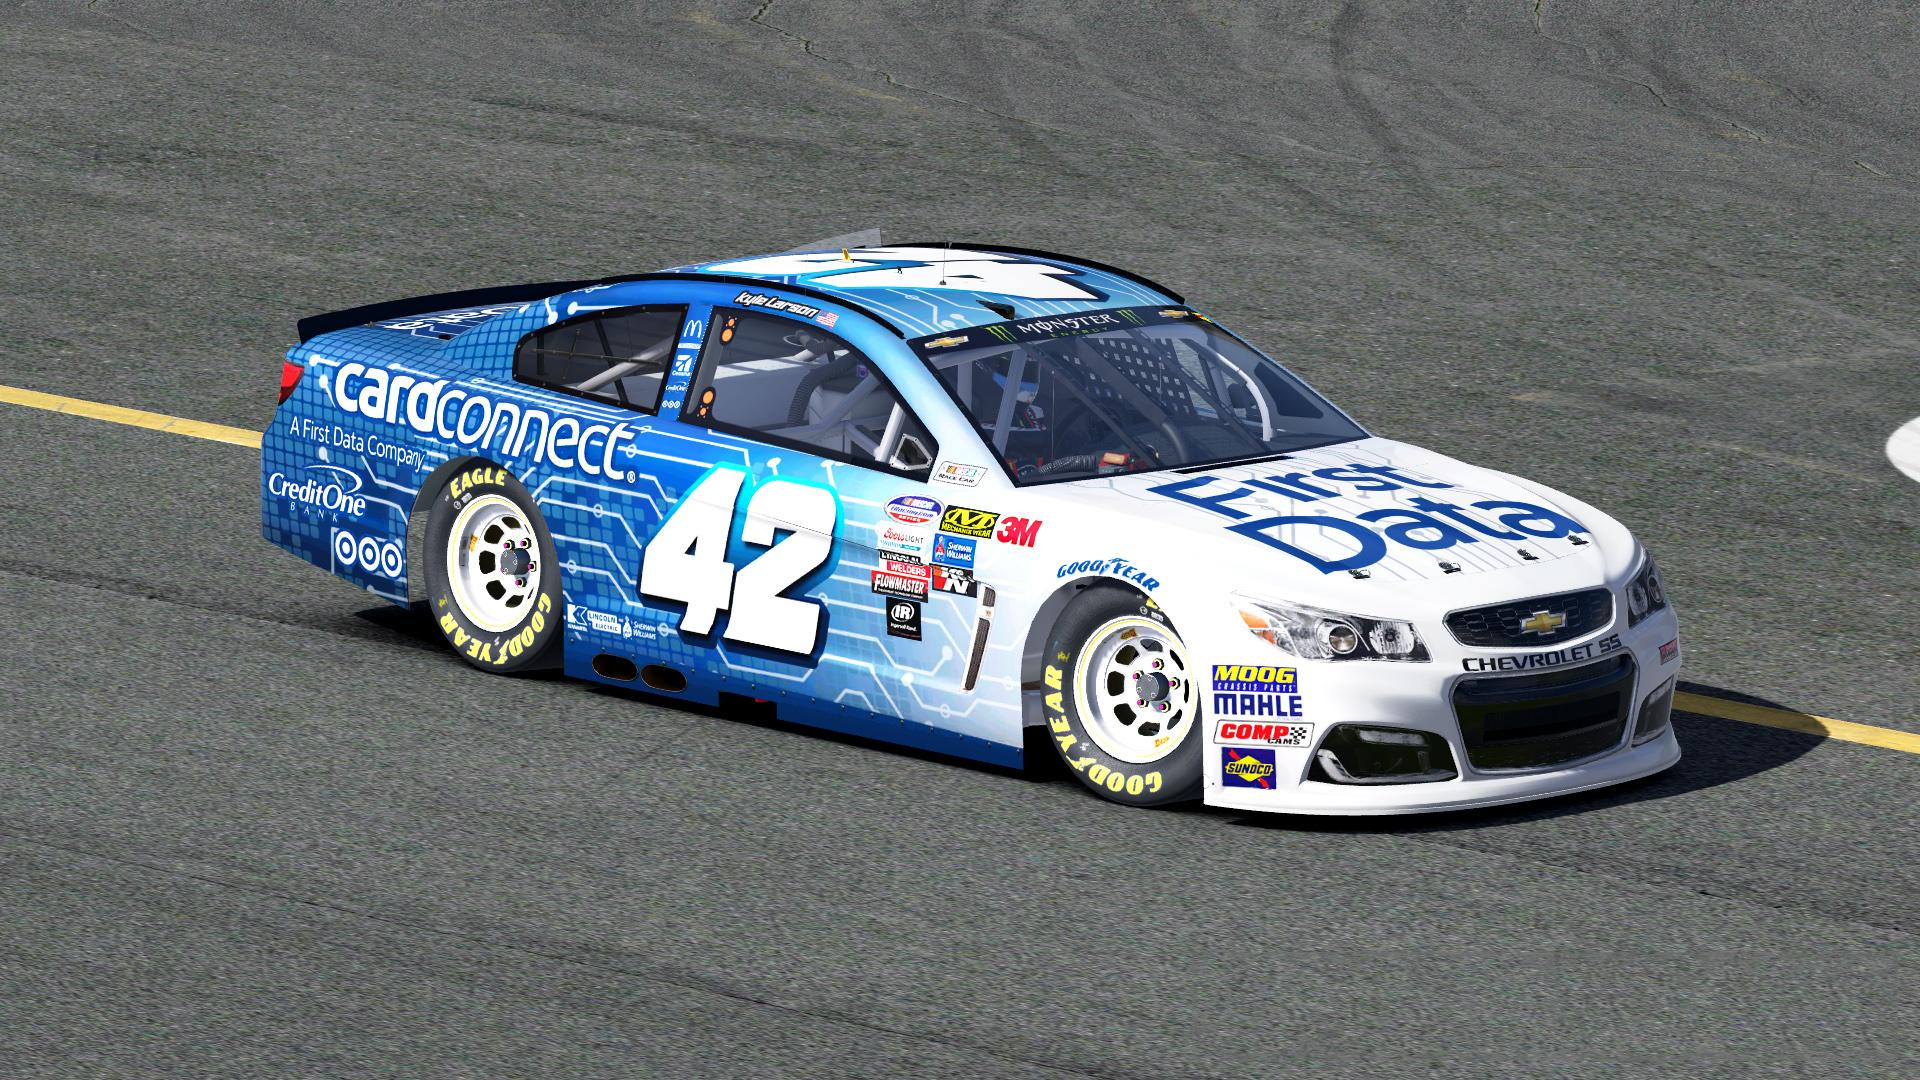 Kyle Larson First Data NASCAR Monster Energy Cup Chevrolet SS By Zach Rader